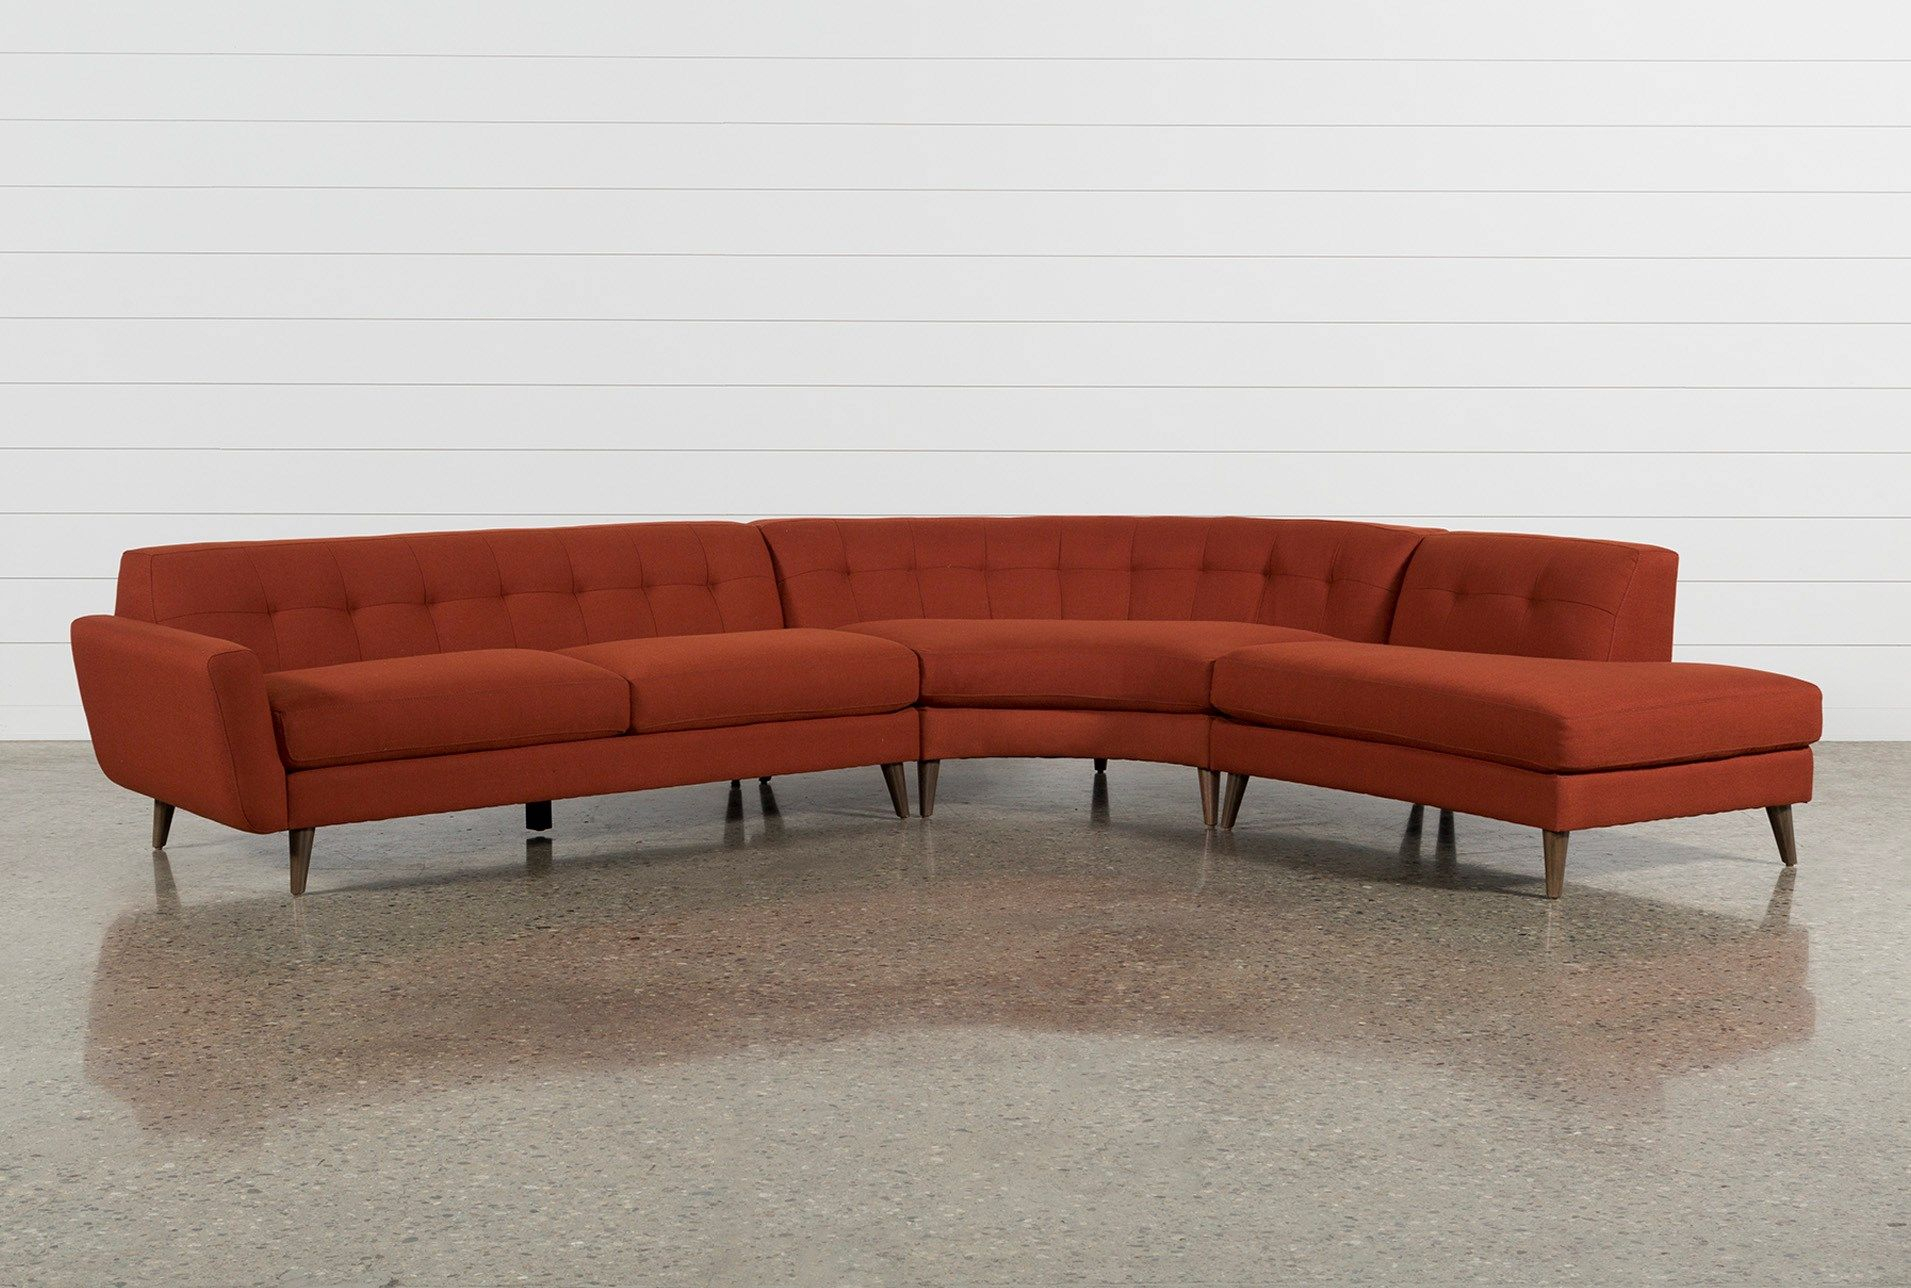 Chill 3 Piece Sectional In 2018 | Home | Pinterest | 3 Piece, 3 For Matteo Arm Sofa Chairs By Nate Berkus And Jeremiah Brent (Image 3 of 20)